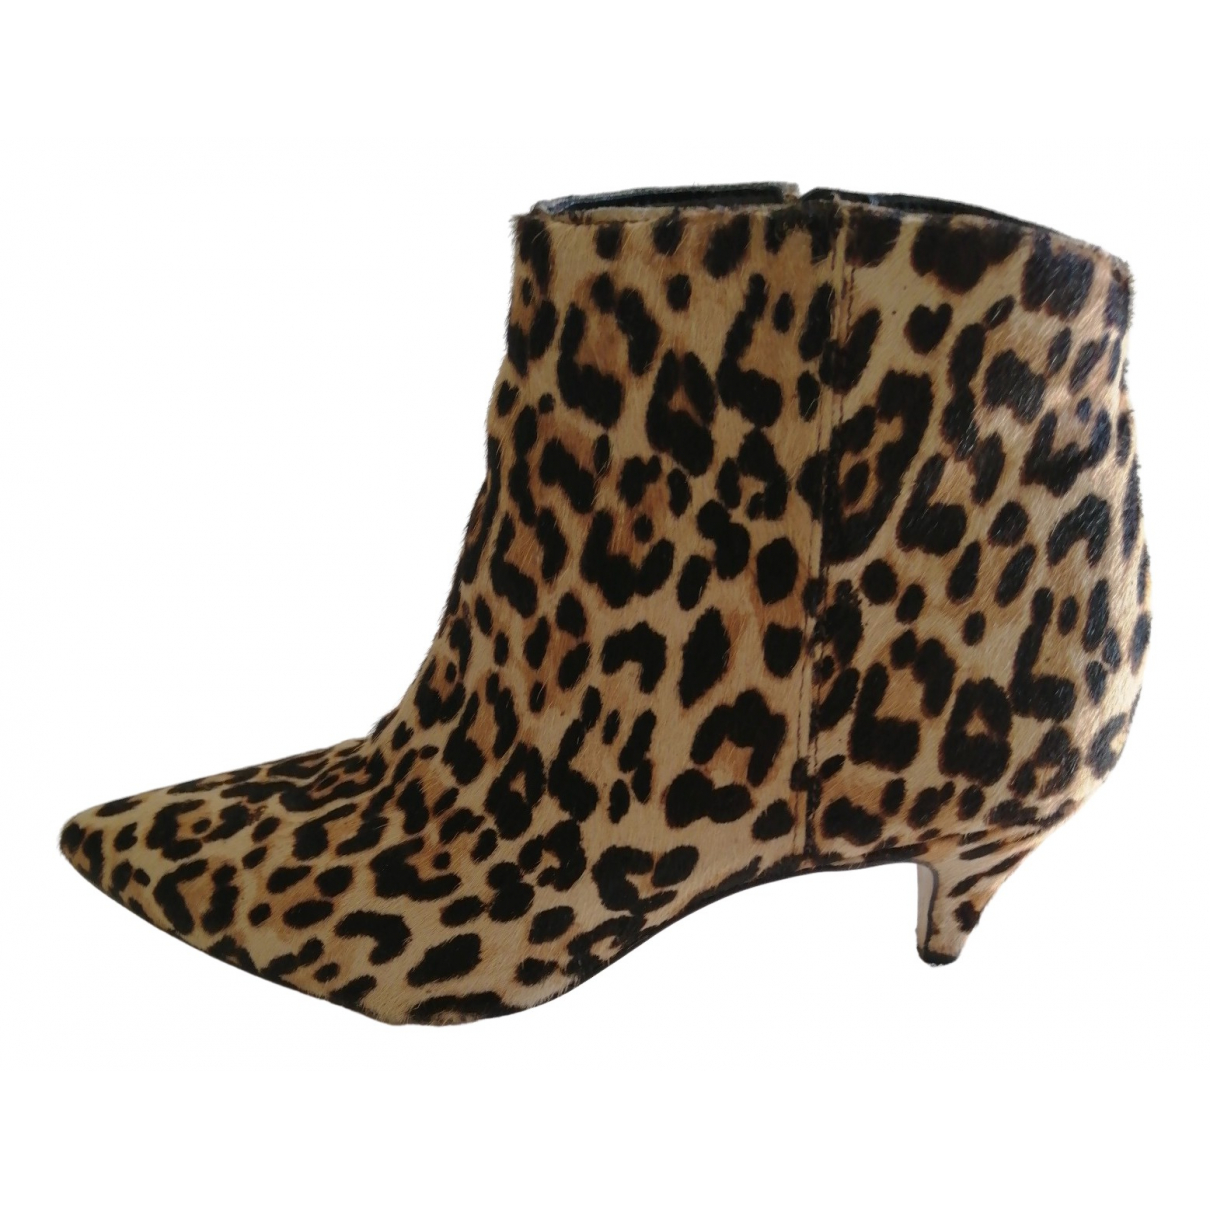 Sam Edelman N Beige Leather Ankle boots for Women 36.5 EU